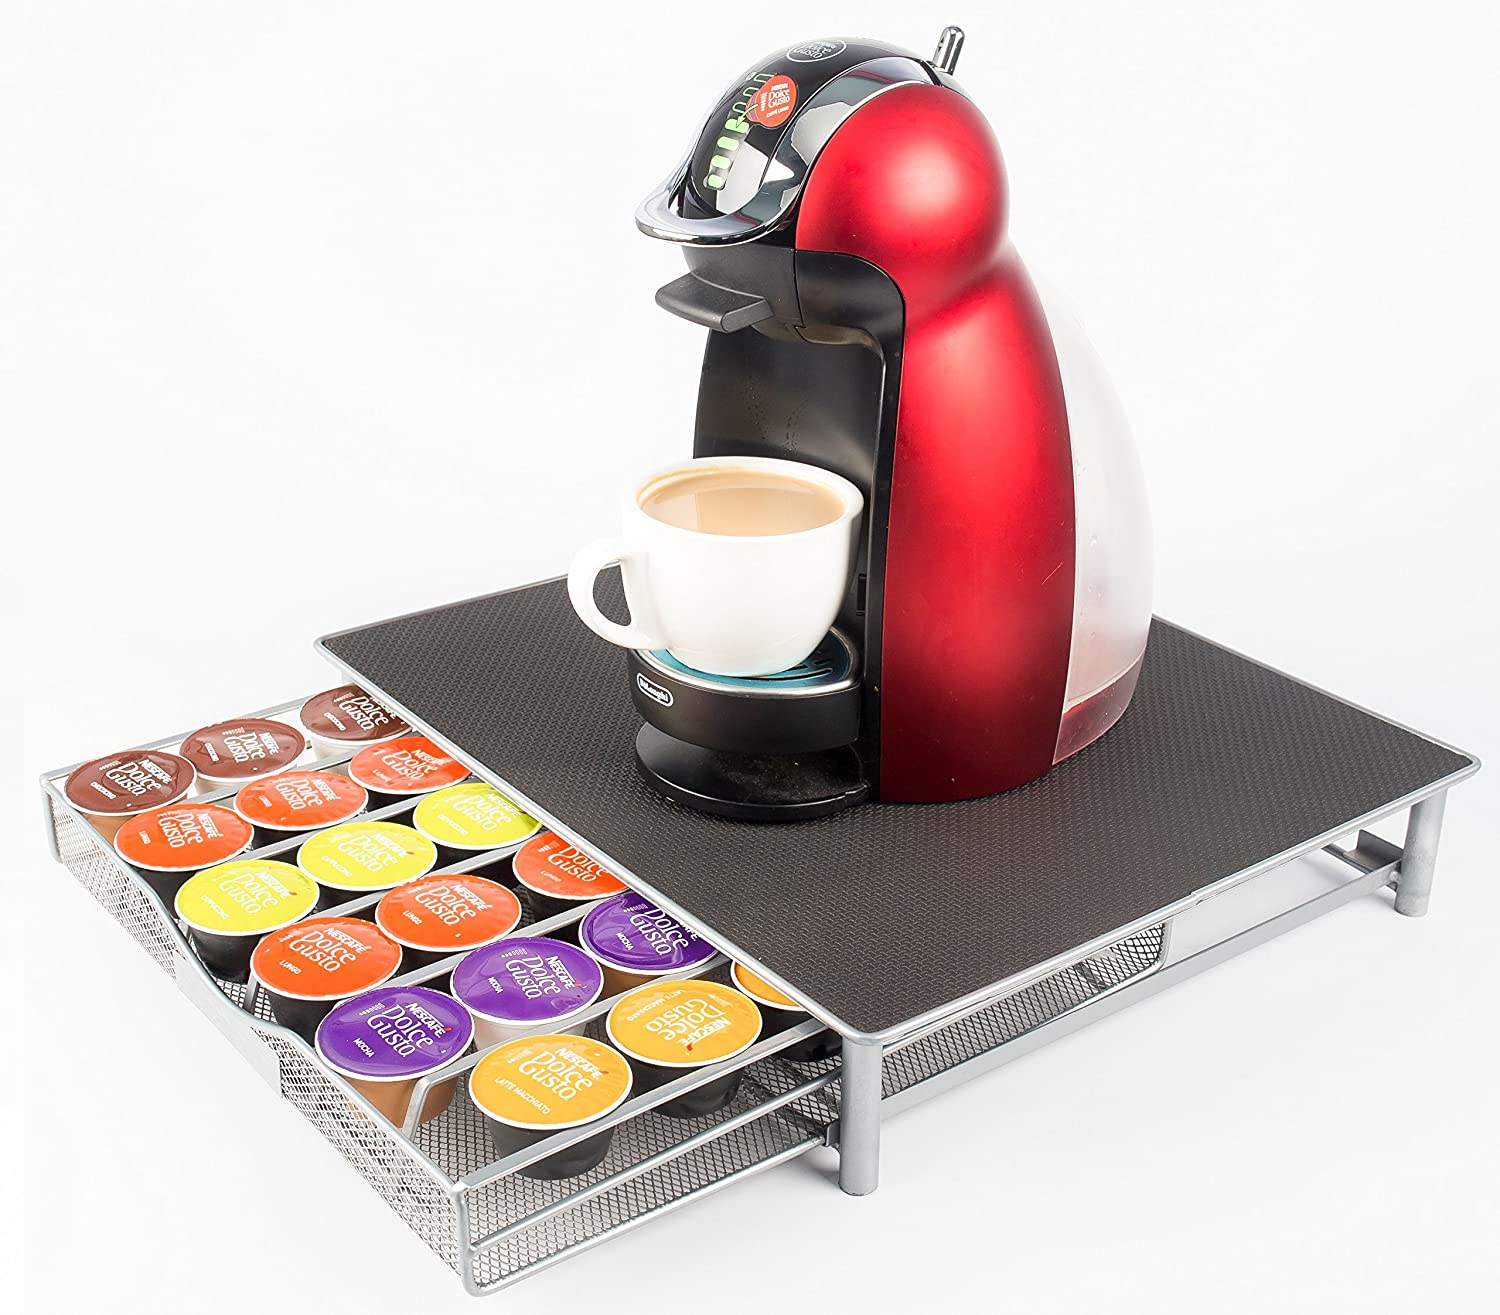 36 Dolce Gusto Coffee Pod Capsule T-Disc Holder - Stainless Steel Mesh Sliding Drawer Dispenser Organiser - Stores Upto 36 Coffee Pods Kitchen Stars